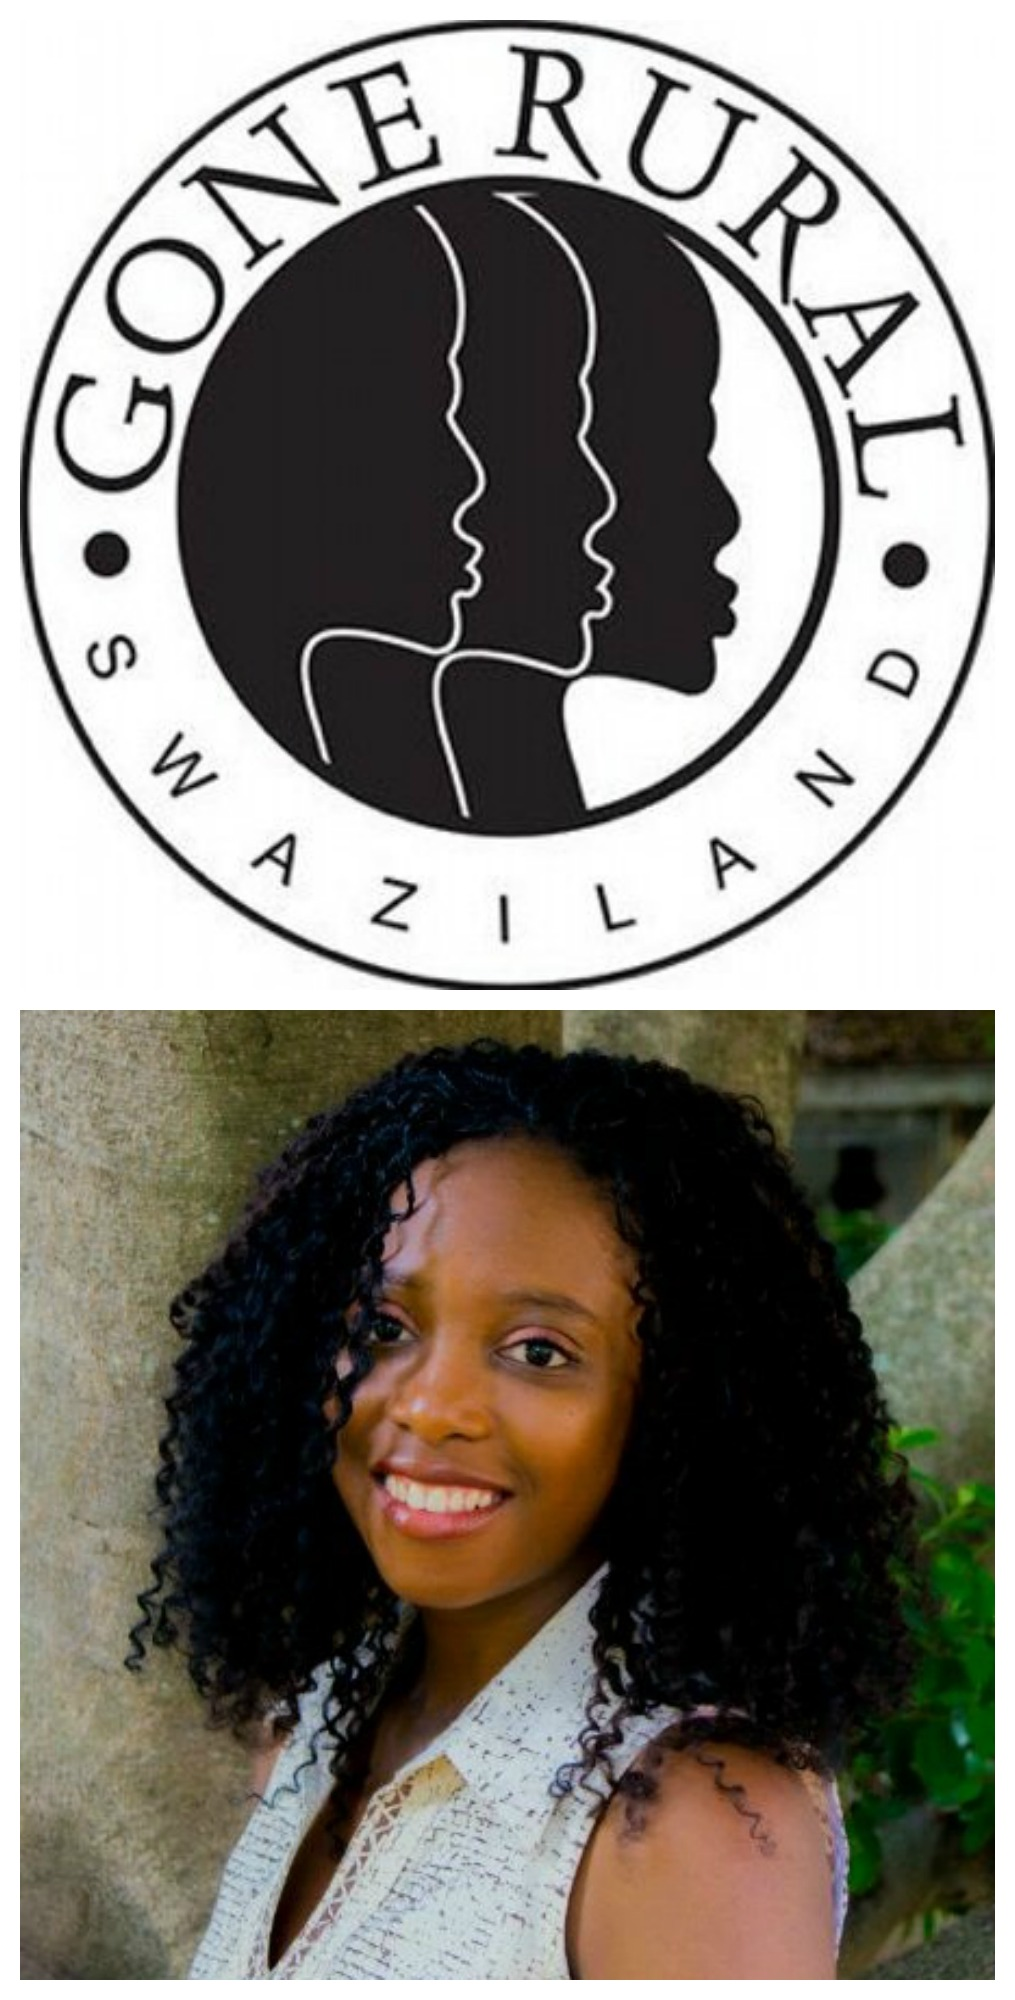 Mellisa Mazingi - Managing Director, Gone Rural SwazilandGone Rural is a Swazi handcraft company inspired by women weavers, using creativity and design to ignite change on a community level through ethical, handmade products. Offering income to more than 780 rural women artisans, these women are skilled weavers and are at the heart of everything the company does, as it aims to provide them with sustainable income, decision-making powers and creative outlets. Gone Rural is constantly reinventing the traditional weaving techniques, and revolutionizing the world-view of African handcraft. Its products range from functional homeware to gallery pieces, with traditional weaving techniques reinterpreted into new and innovative contemporary designs. Inspired by the lutindzi grass of the mountains of eSwatini (formerly Swaziland) and the women leaders of rural communities, Gone Rural transforms the indigenous art of weaving into high-quality products that are showcased and loved all over the world.Gone Rural began as one woman's mission to empower women in eSwatini's most remote areas. Jenny Thorne's visionary business model was started in 1992 with 30 basket weavers and artisans, with the objective of creating a way for the rural women to earn an income from home as well as share their beautiful craft with the world. From a craft shop in eSwatini, Gone Rural has grown to working with 786 artisans, selling their products to more than 300 customers all over the world. Gone Rural has blossomed from a local women's empowerment project to a global leader in handcraft and design, using creativity to ignite social change. A quarter of a century later, women and the community remain at the heart of everything the company does.